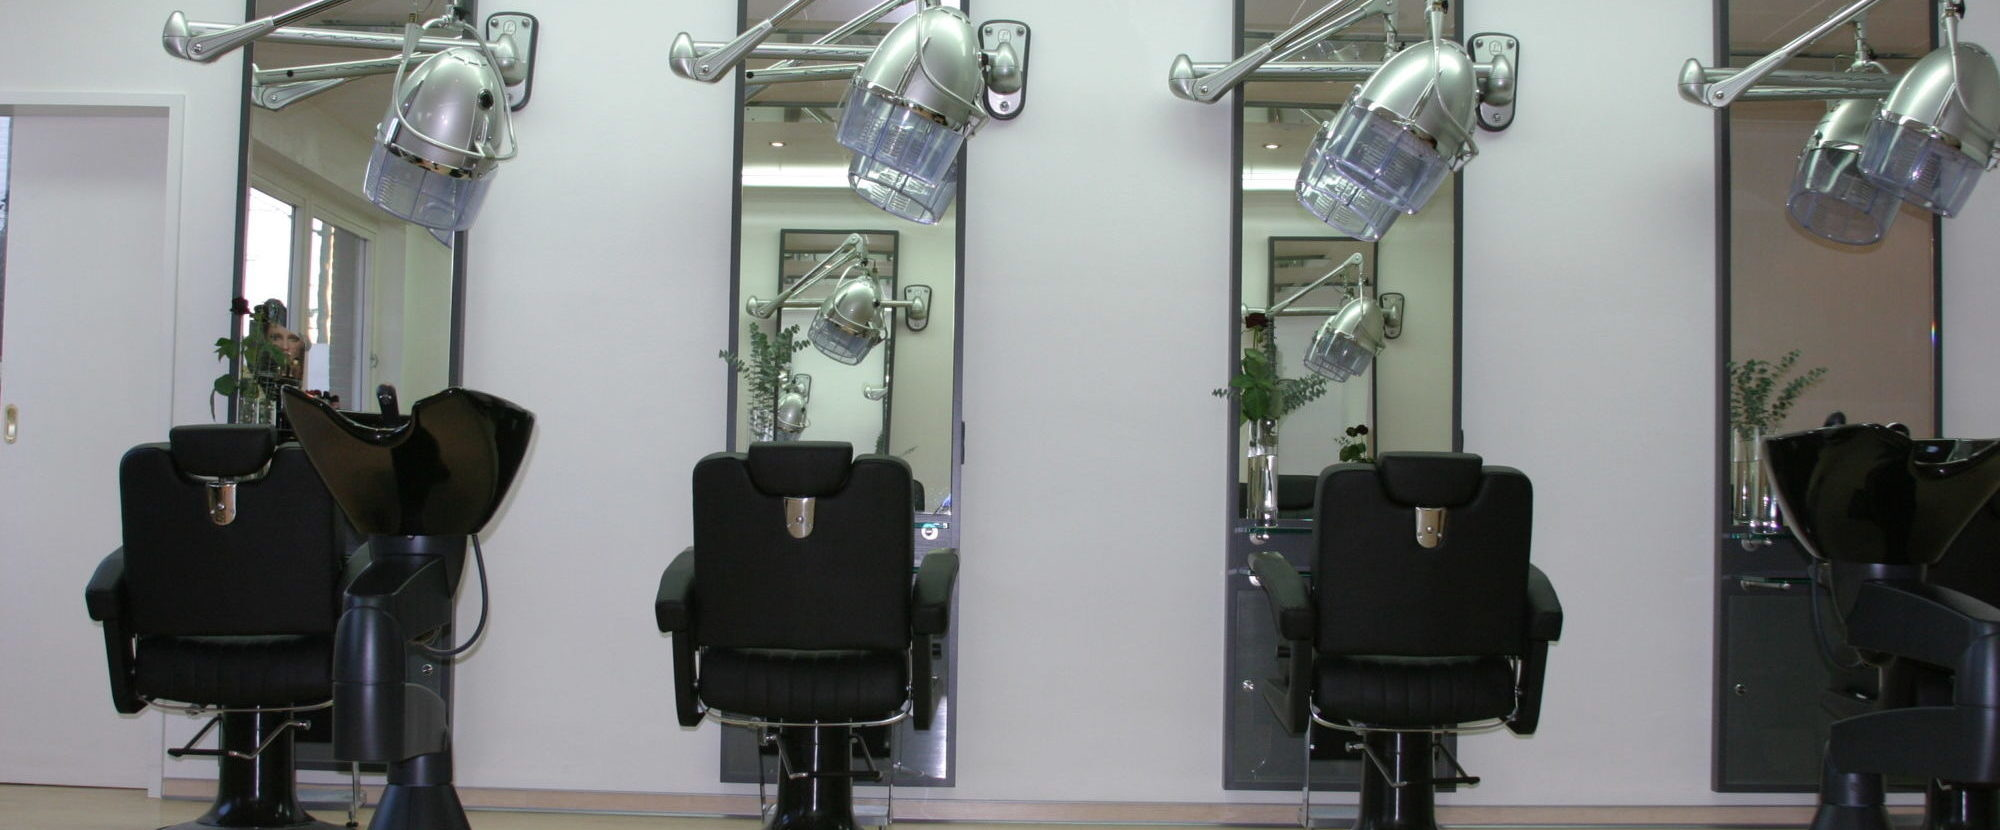 Salon Impression Jost Schmitz Headerbild2